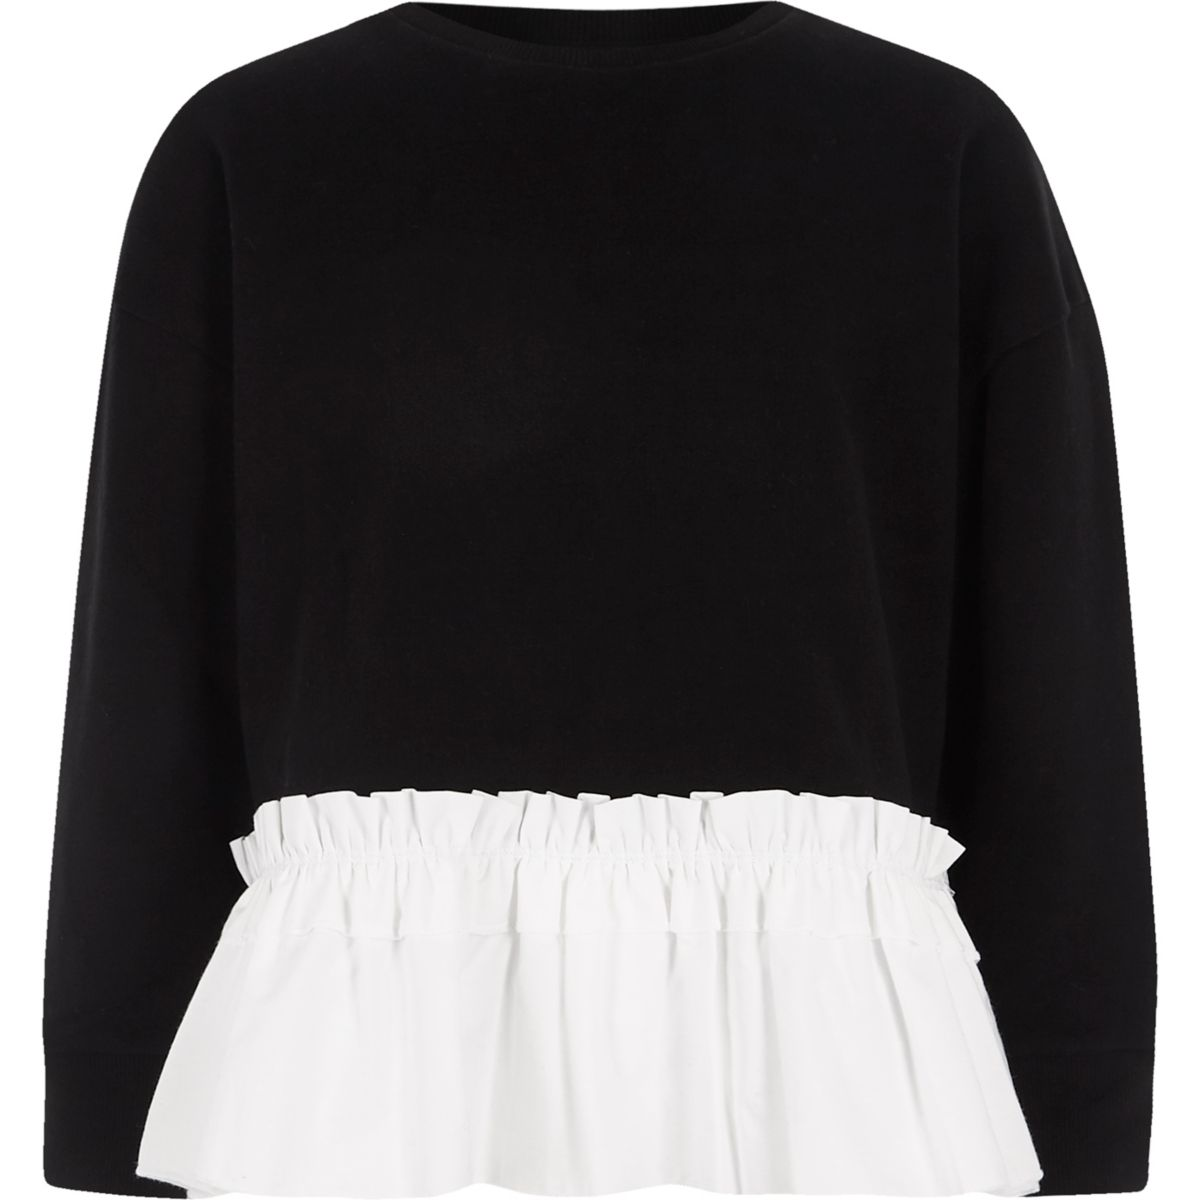 Girls black contrast poplin hem sweatshirt